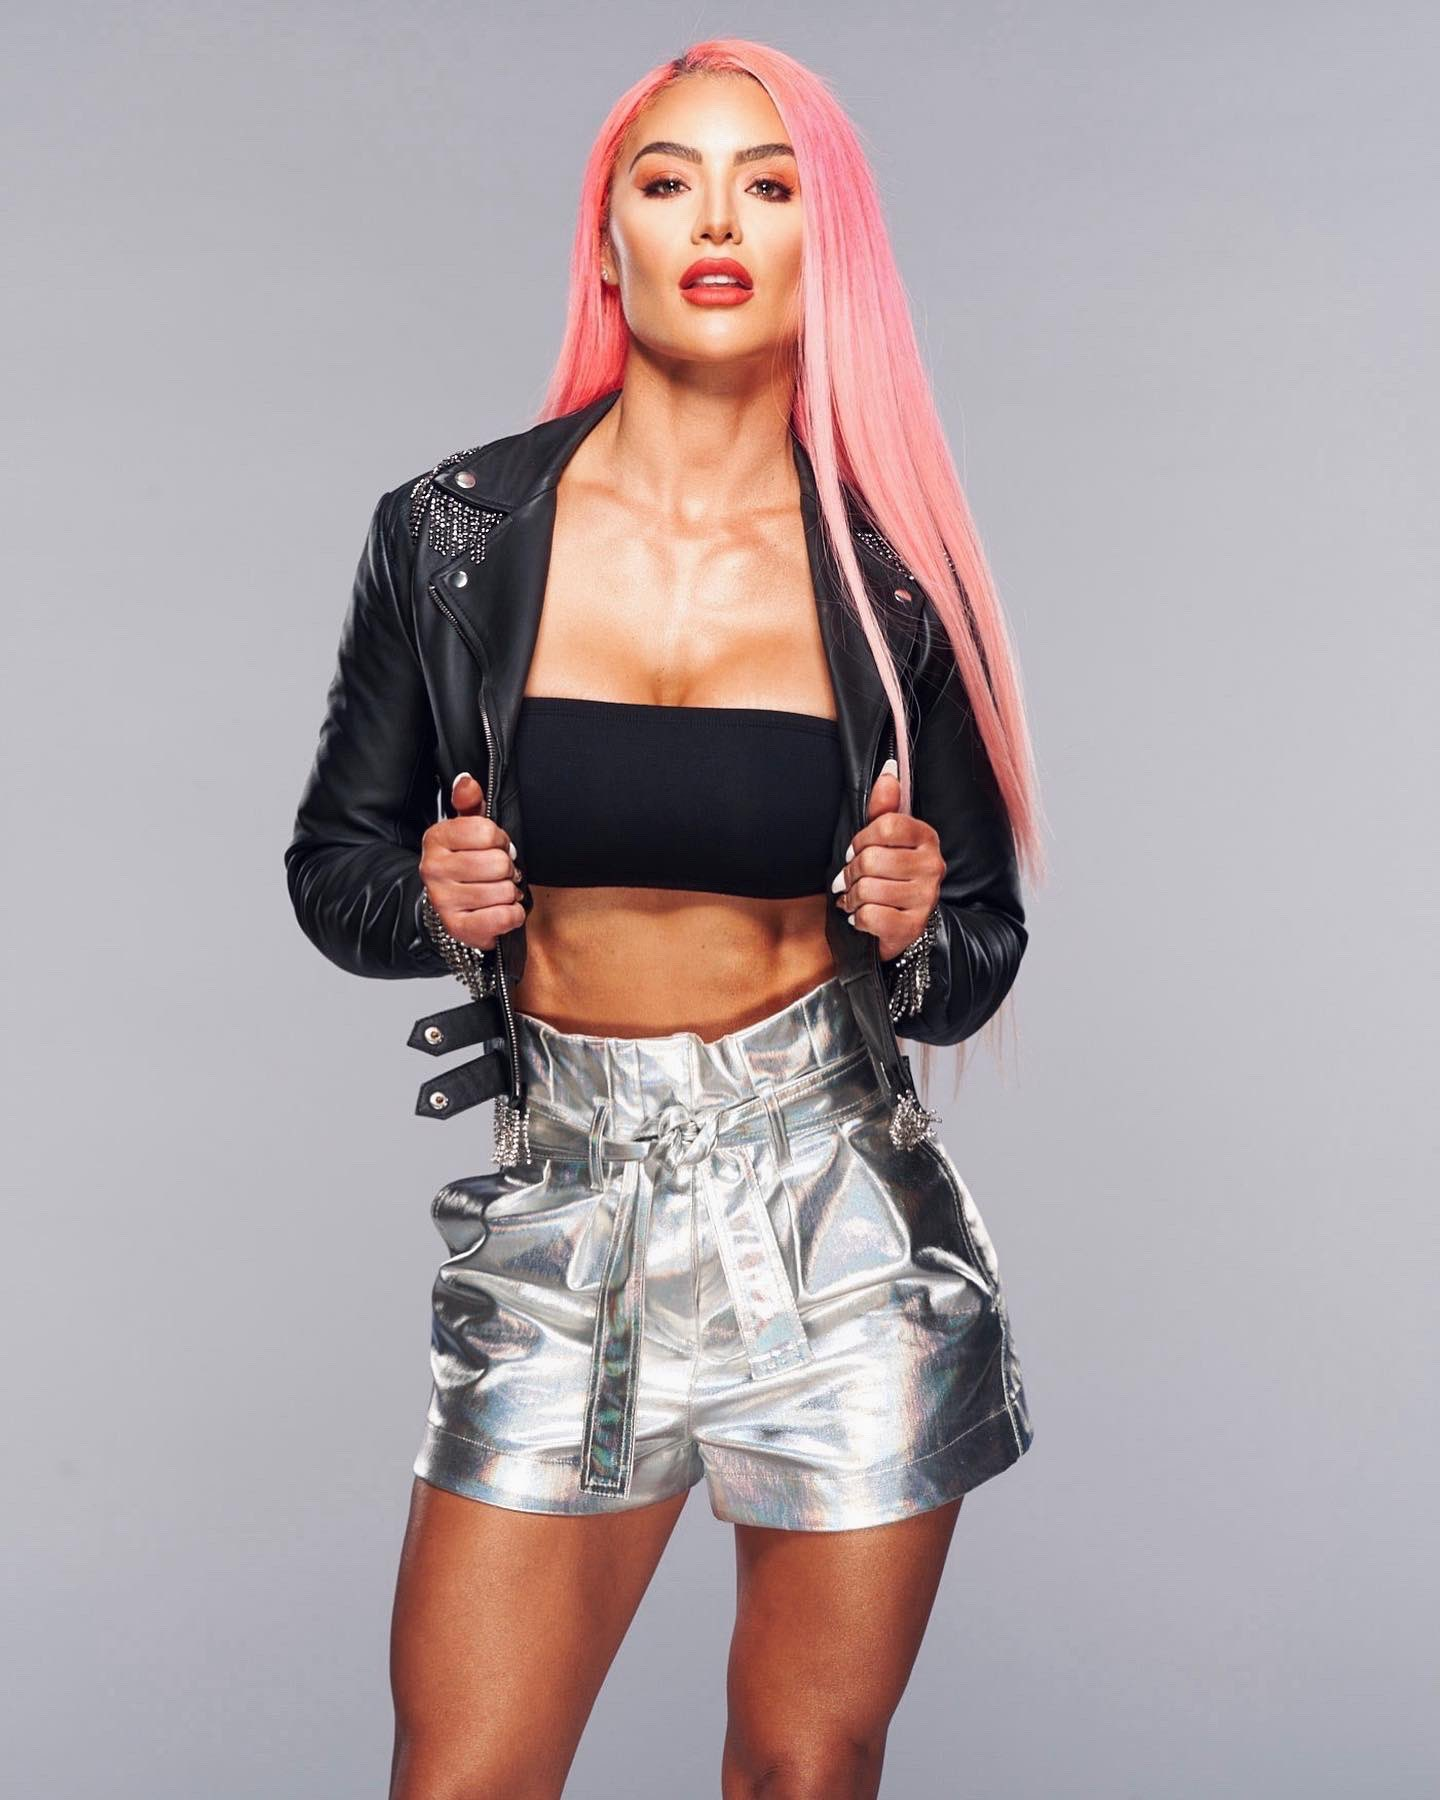 WWE Star Eva Marie Continues To Bring Pink Power In Stunning Photos 193